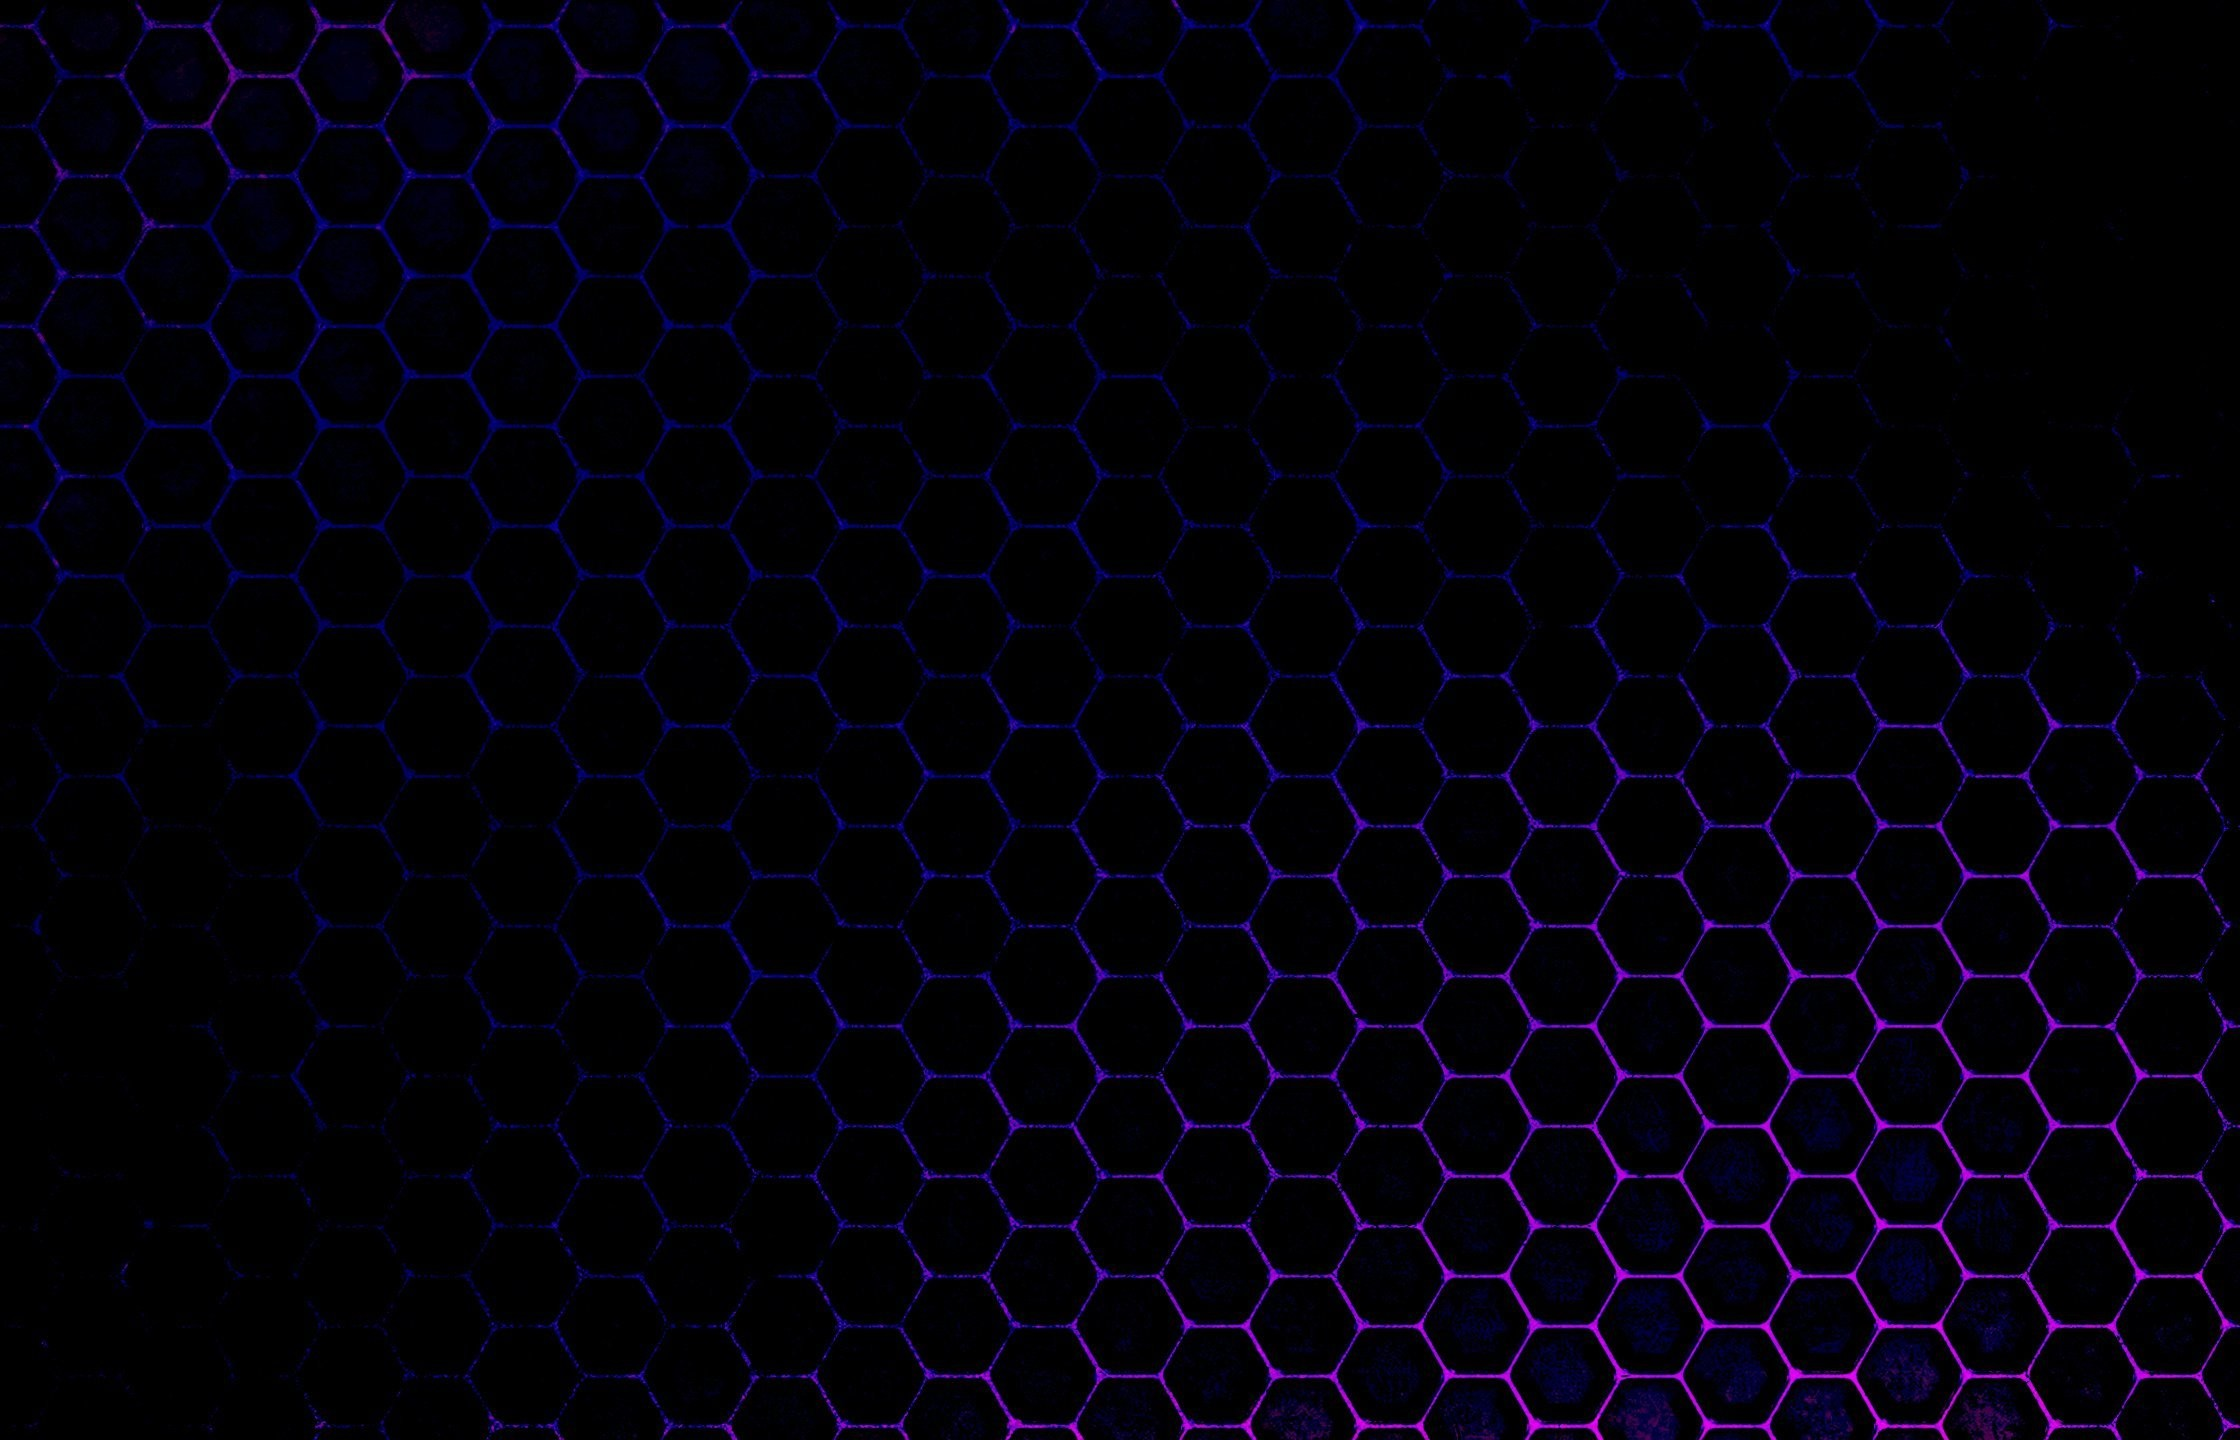 2240x1440 pure black wallpaper android central